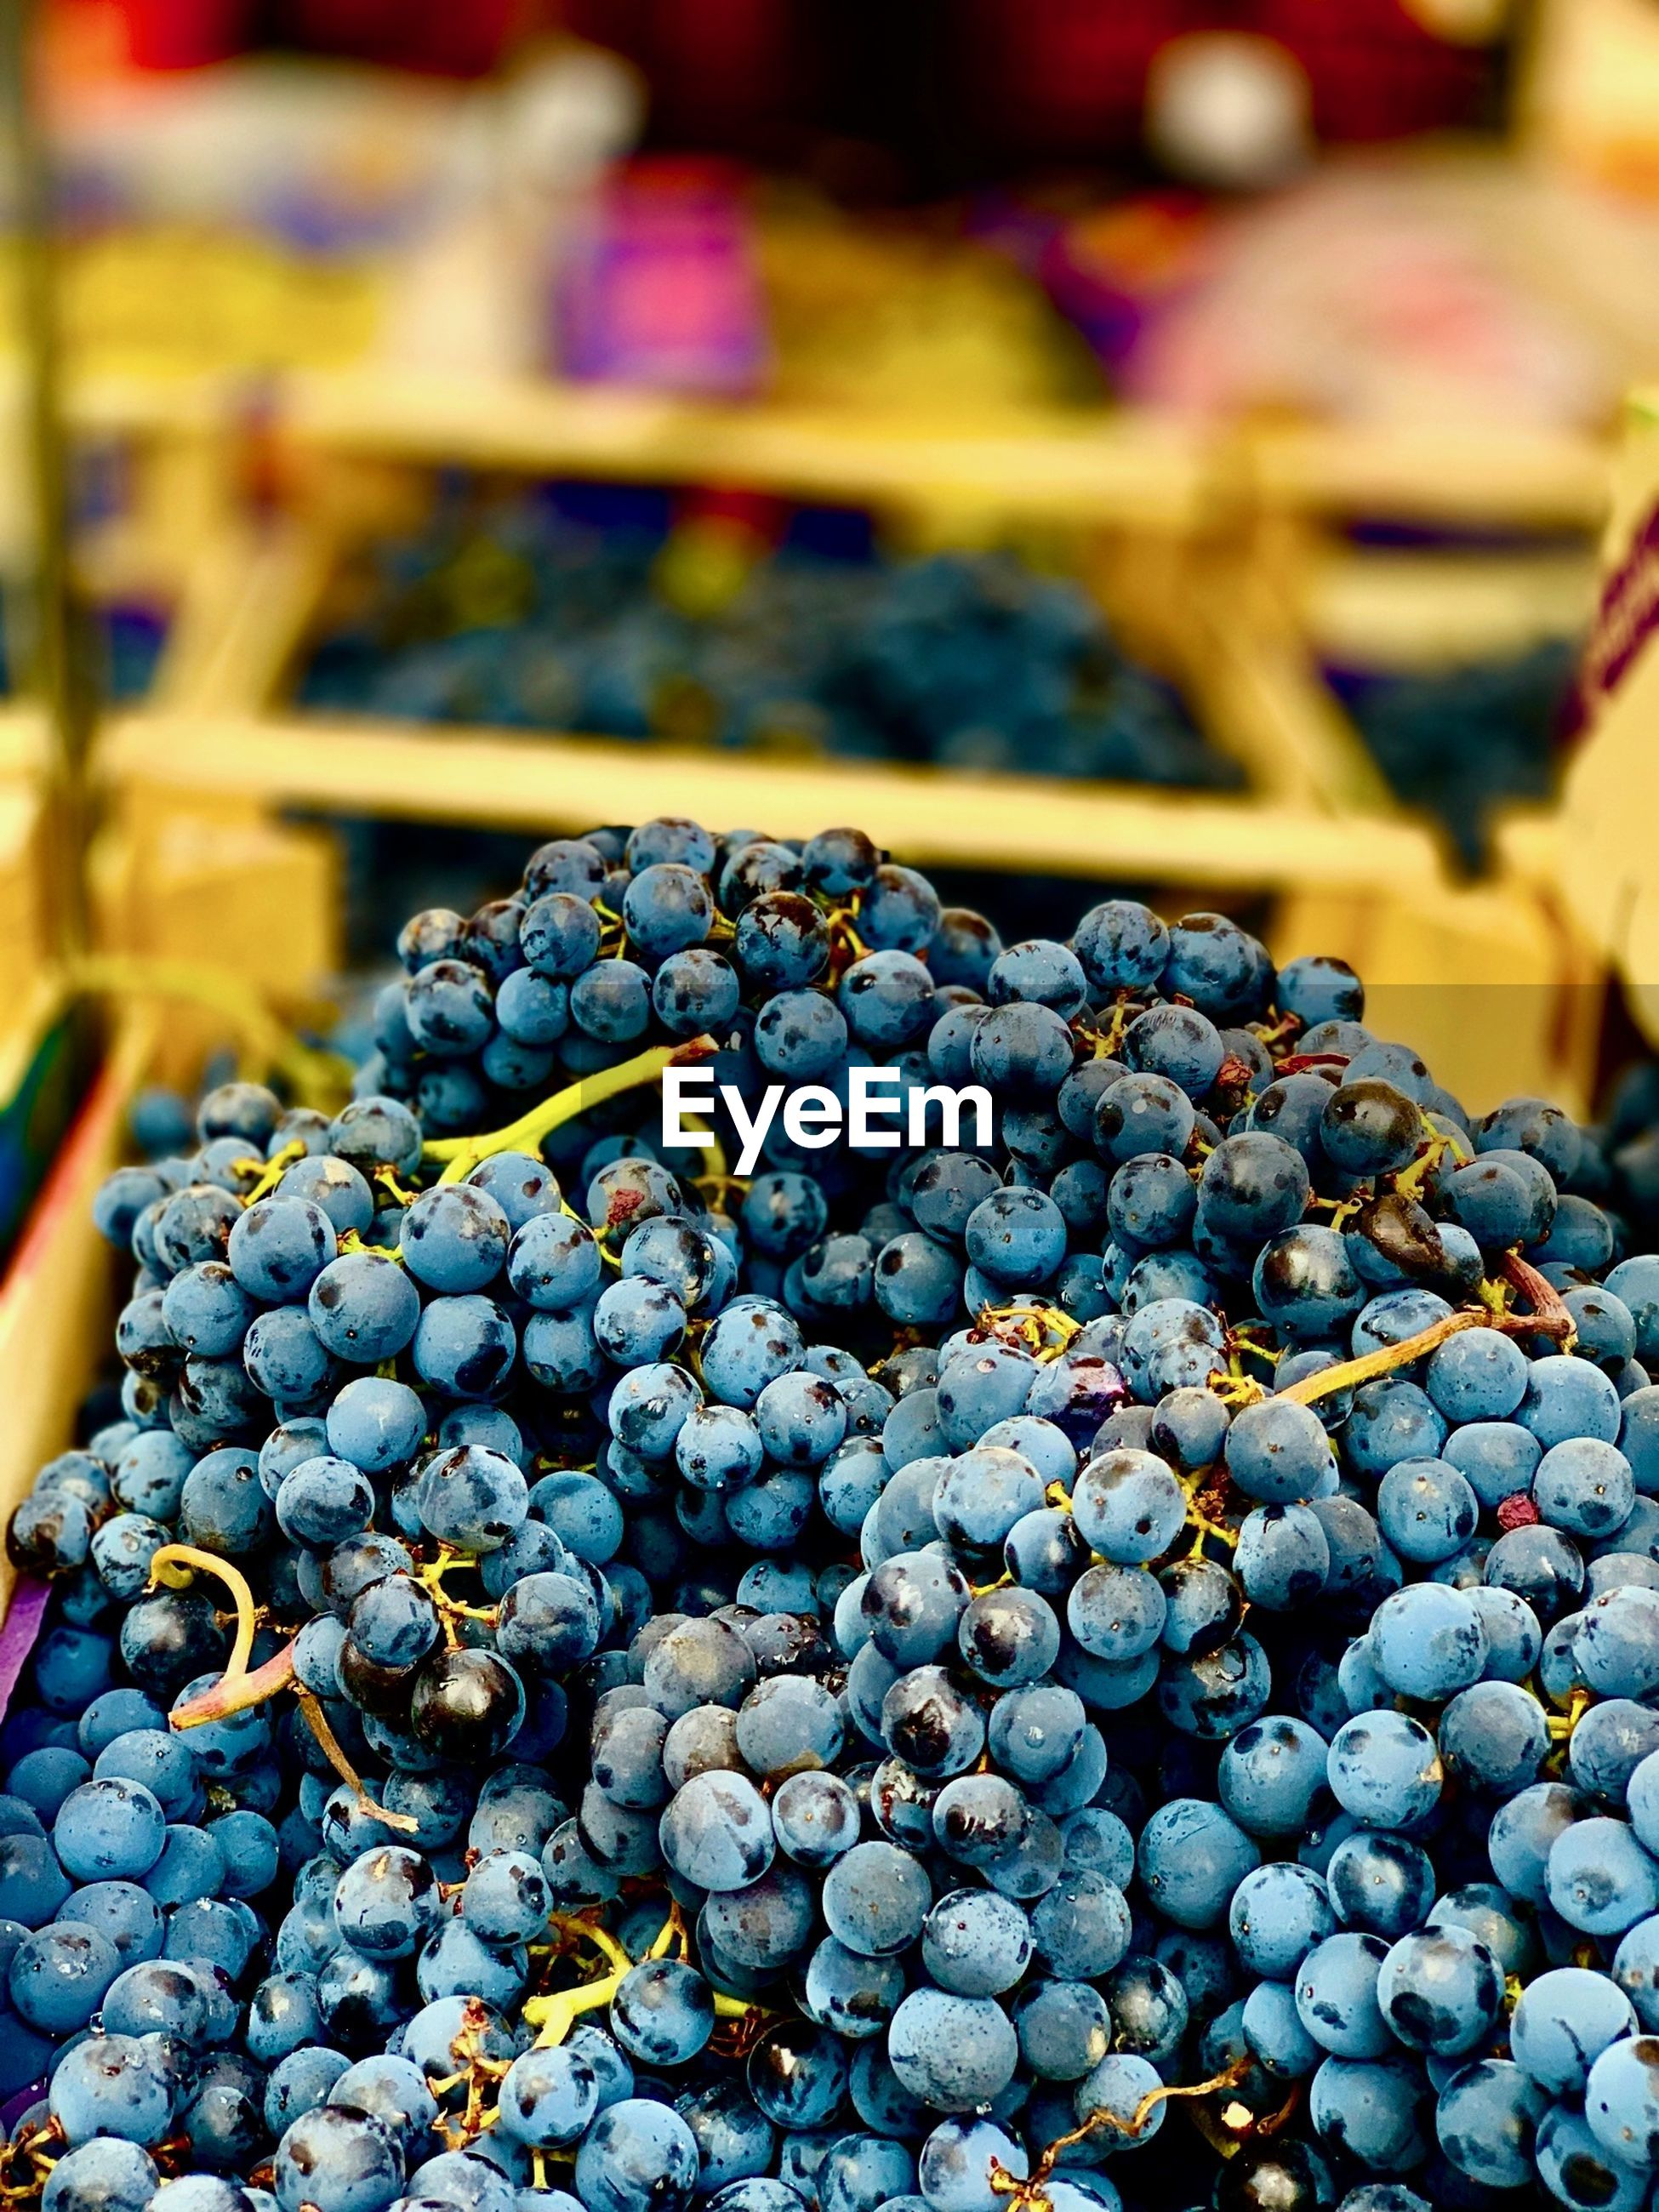 CLOSE-UP OF GRAPES FOR SALE AT MARKET